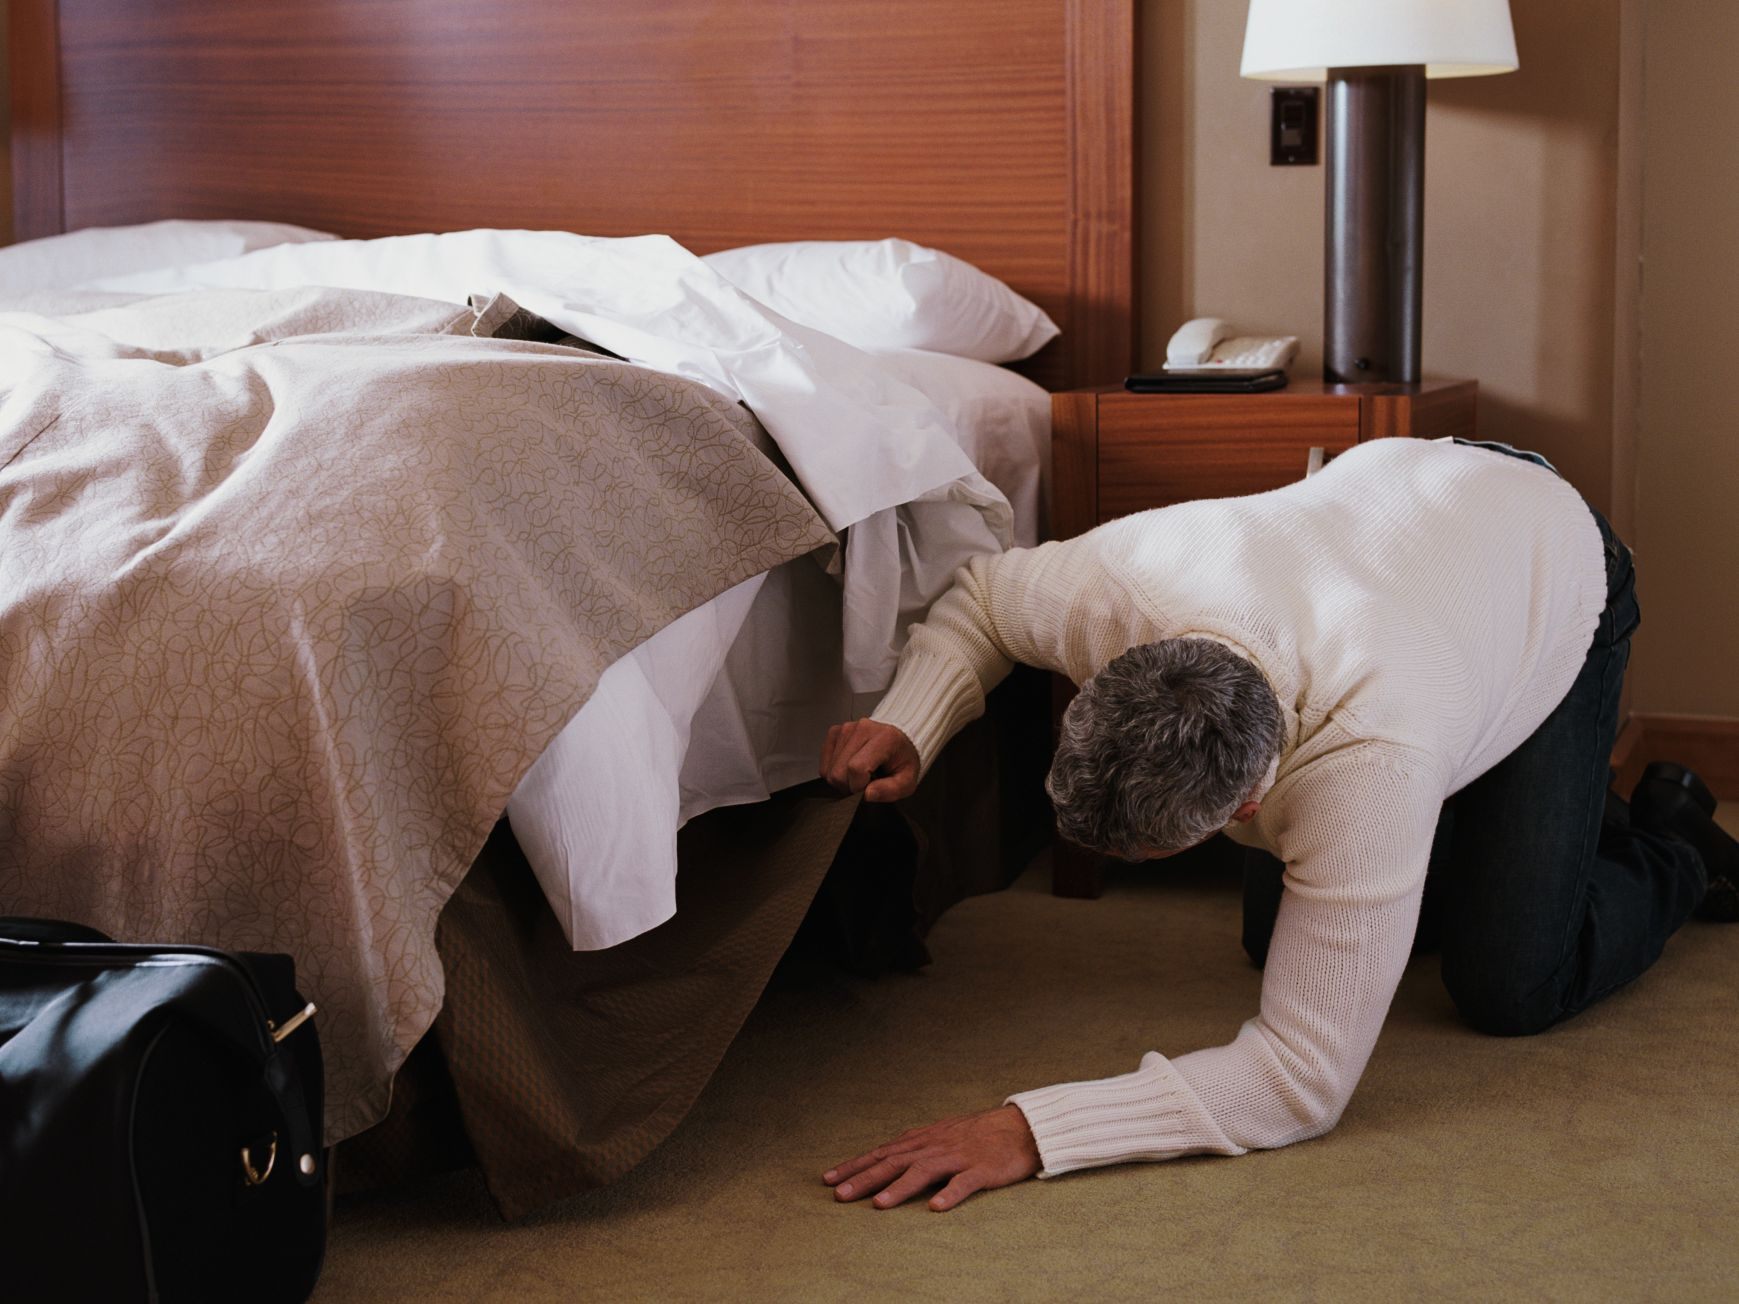 The Body Under the Bed - Urban Legends